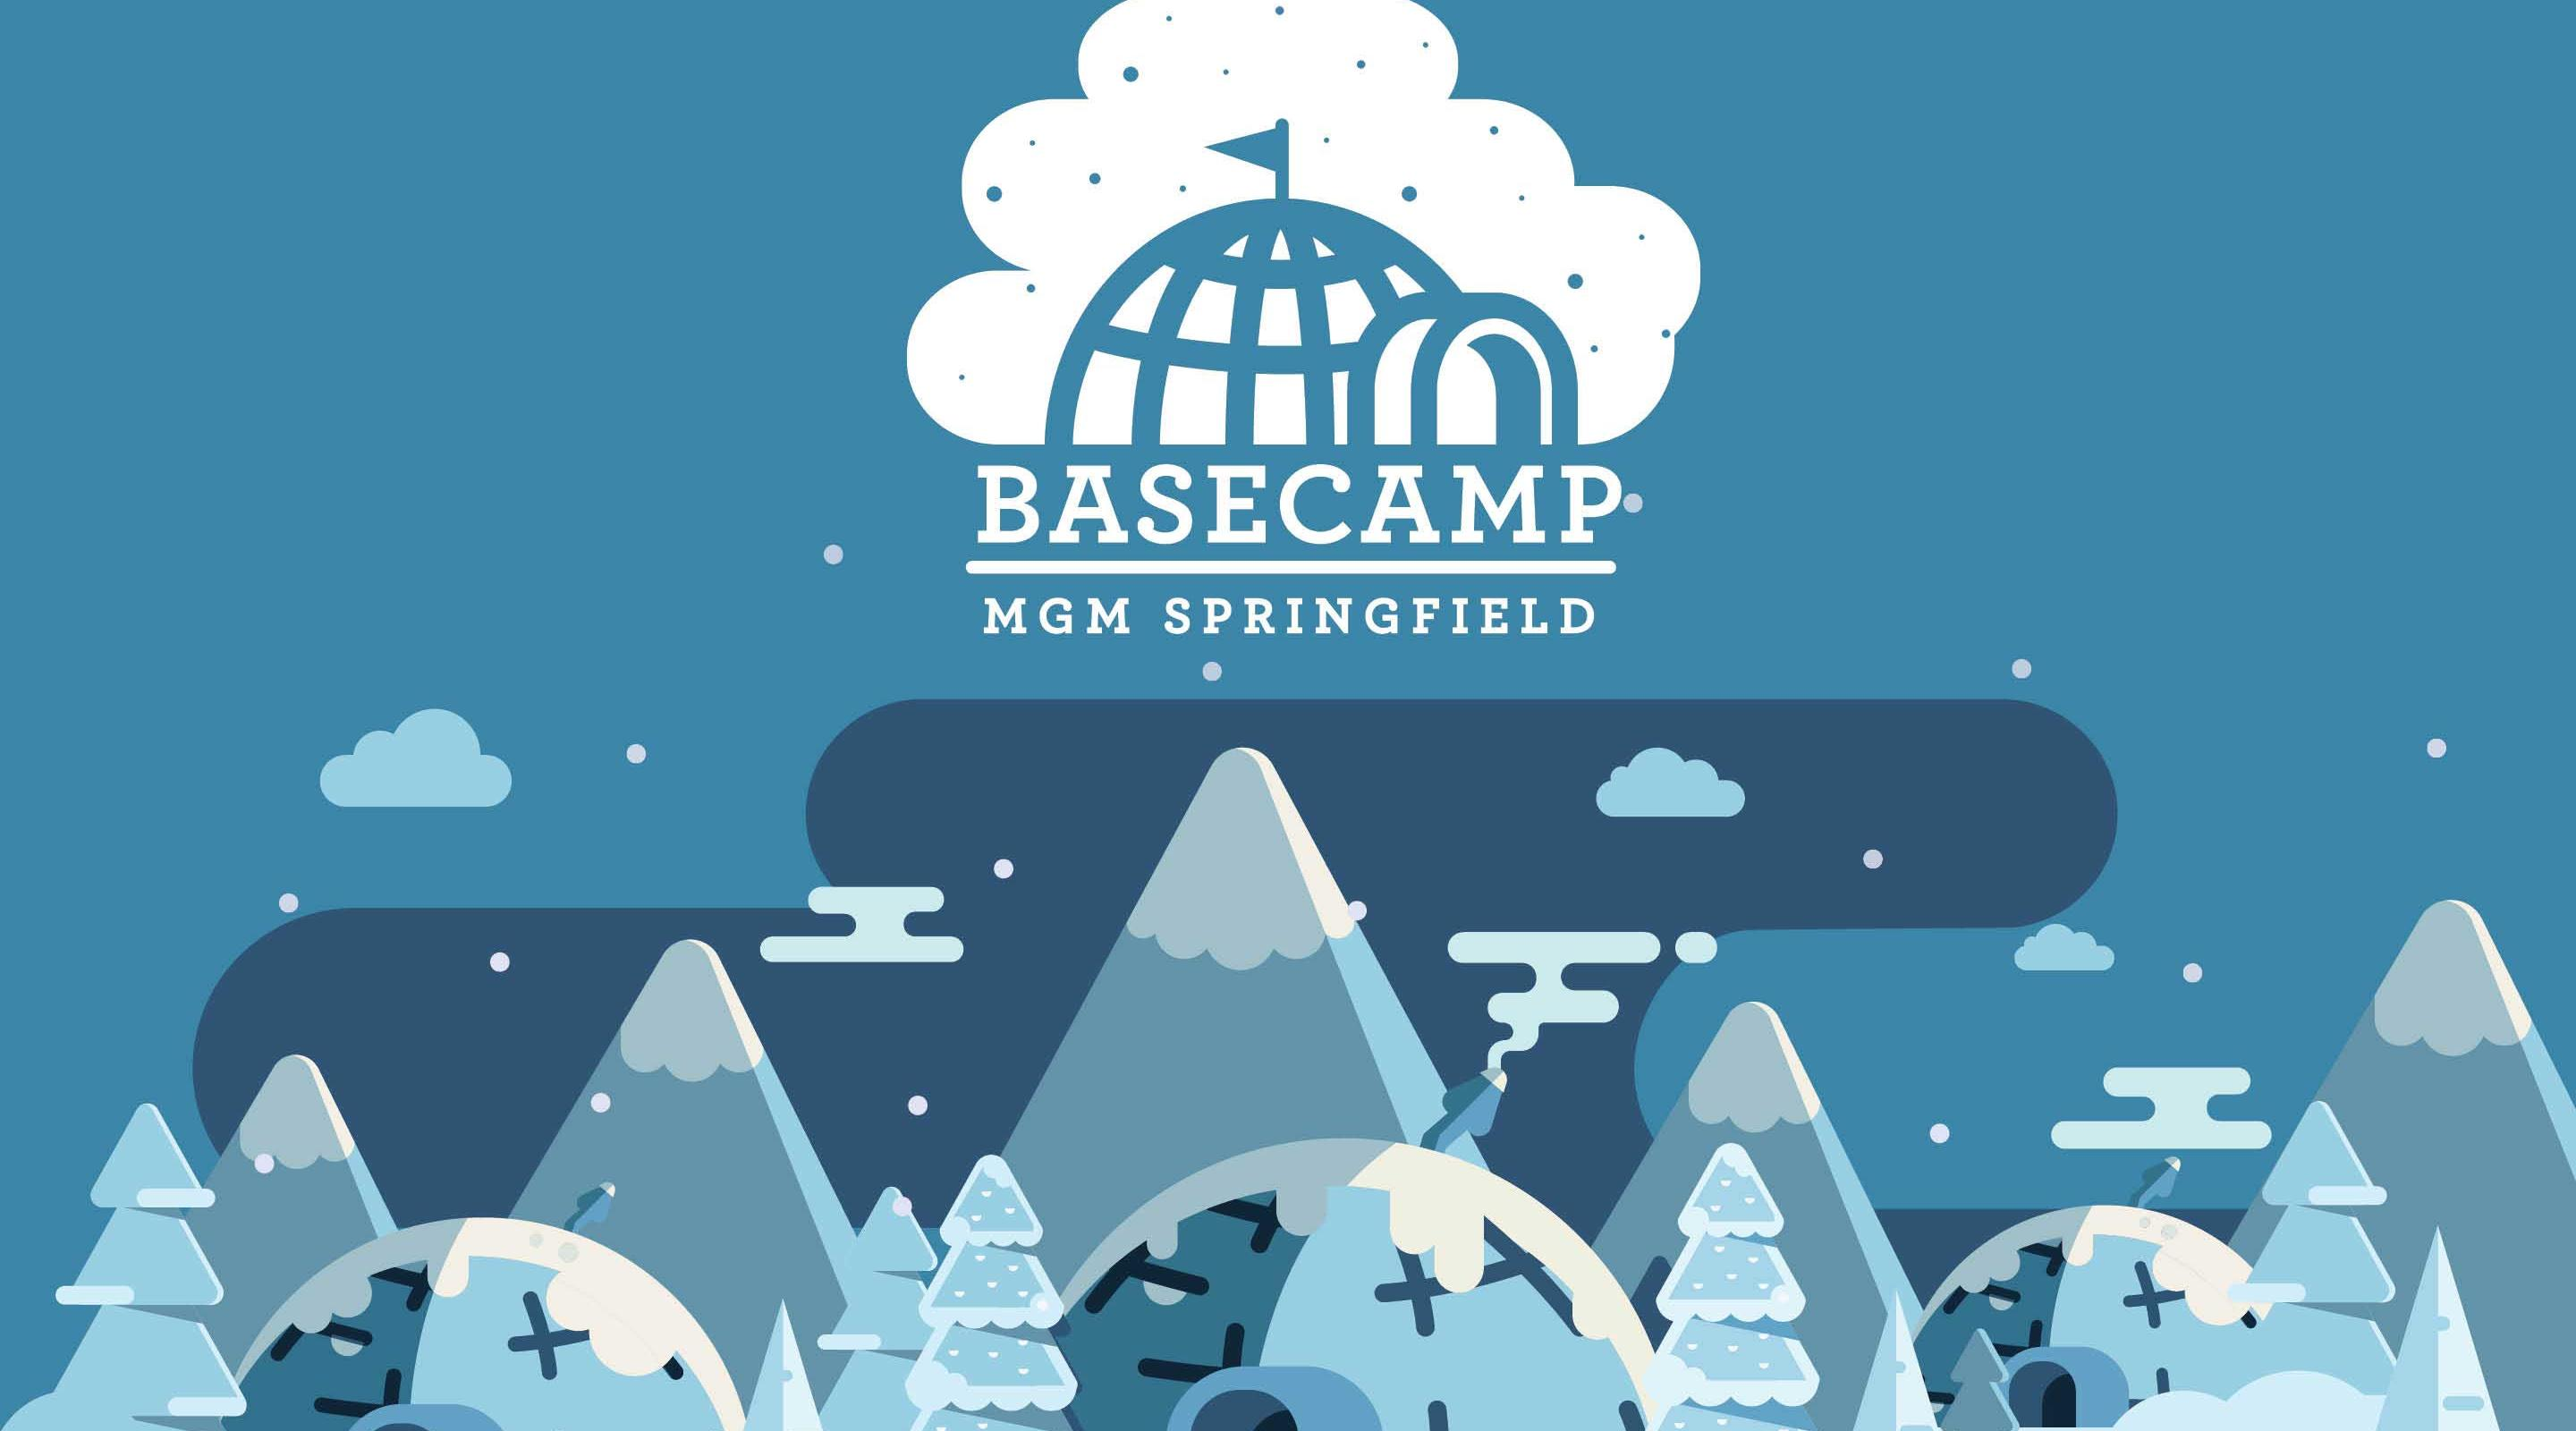 Basecamp igloos are coming to TAP at MGM Springfield.